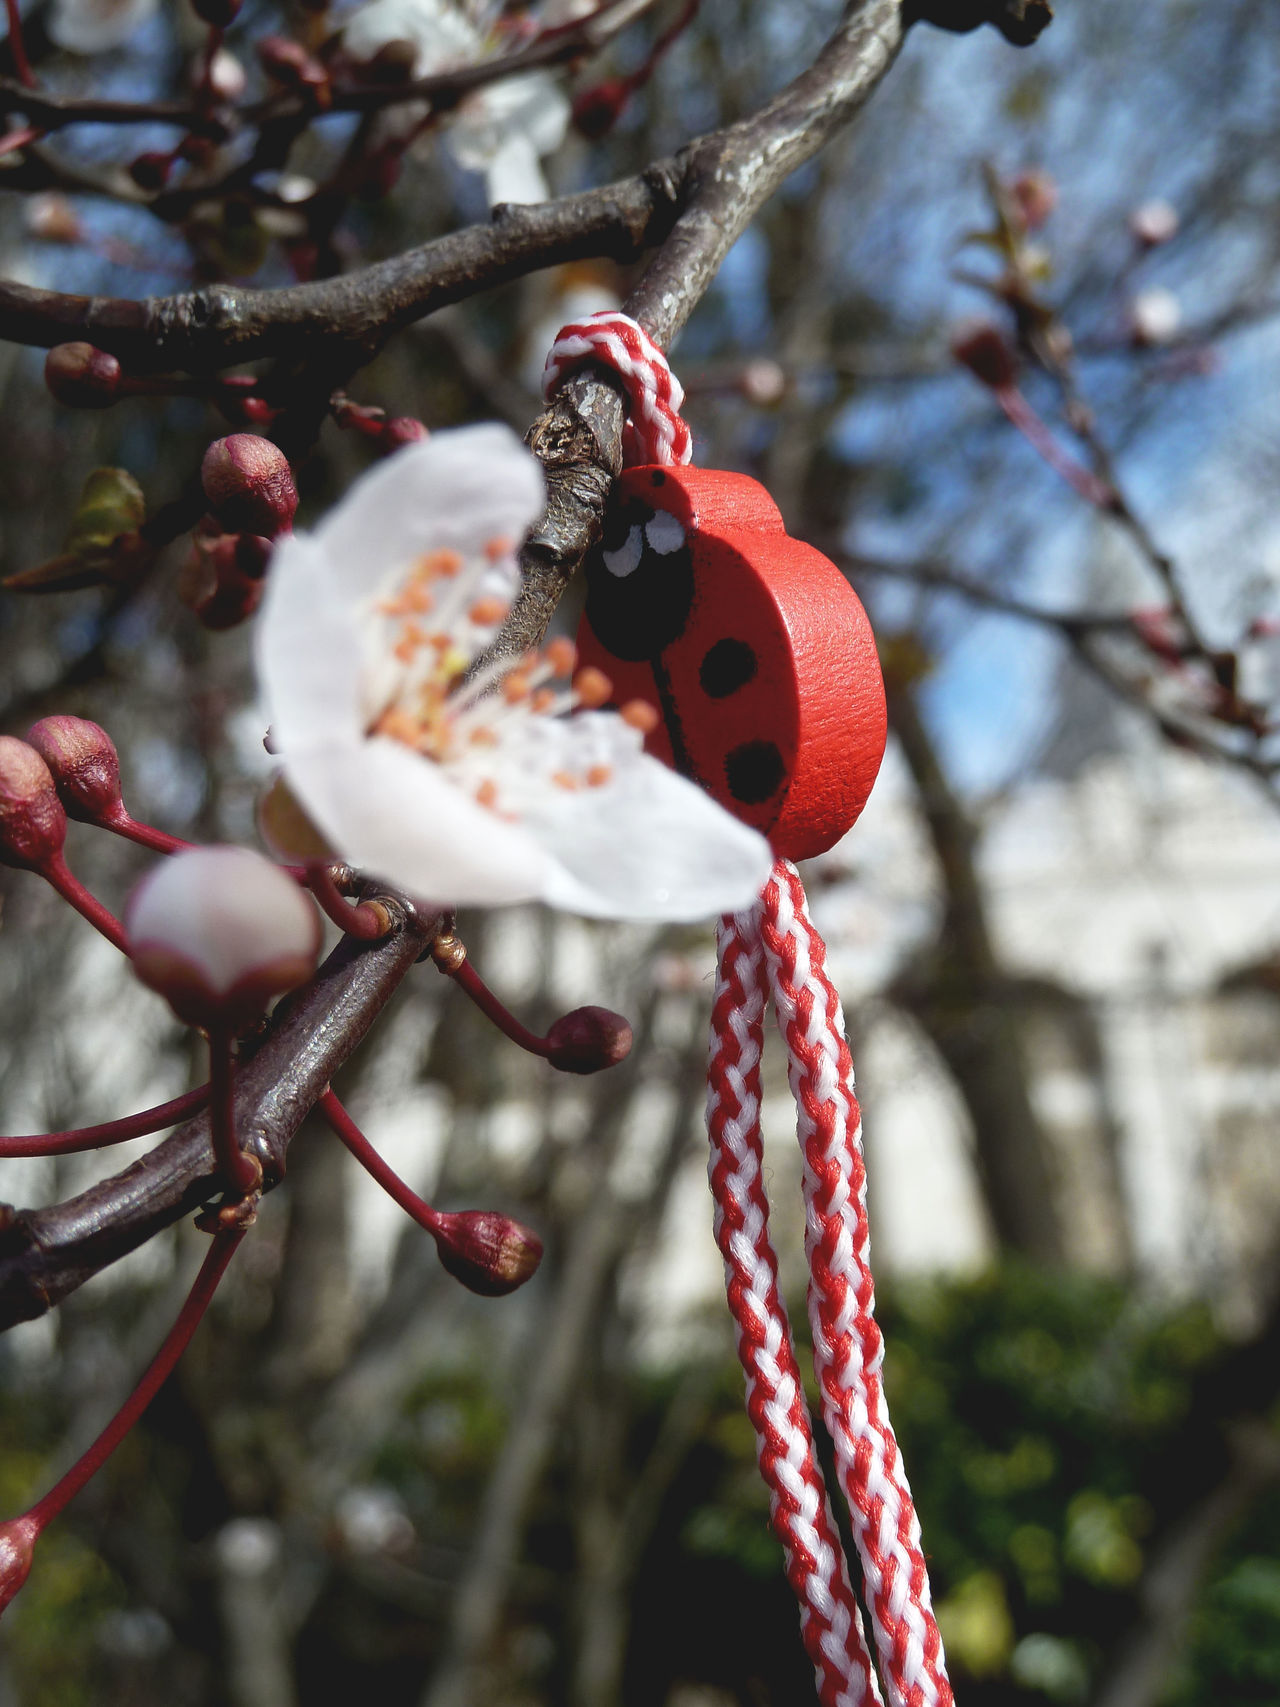 Beauty In Nature Day Ladybug Pendant Nature Outdoors Rot Red White France Tree White Bloom Tree